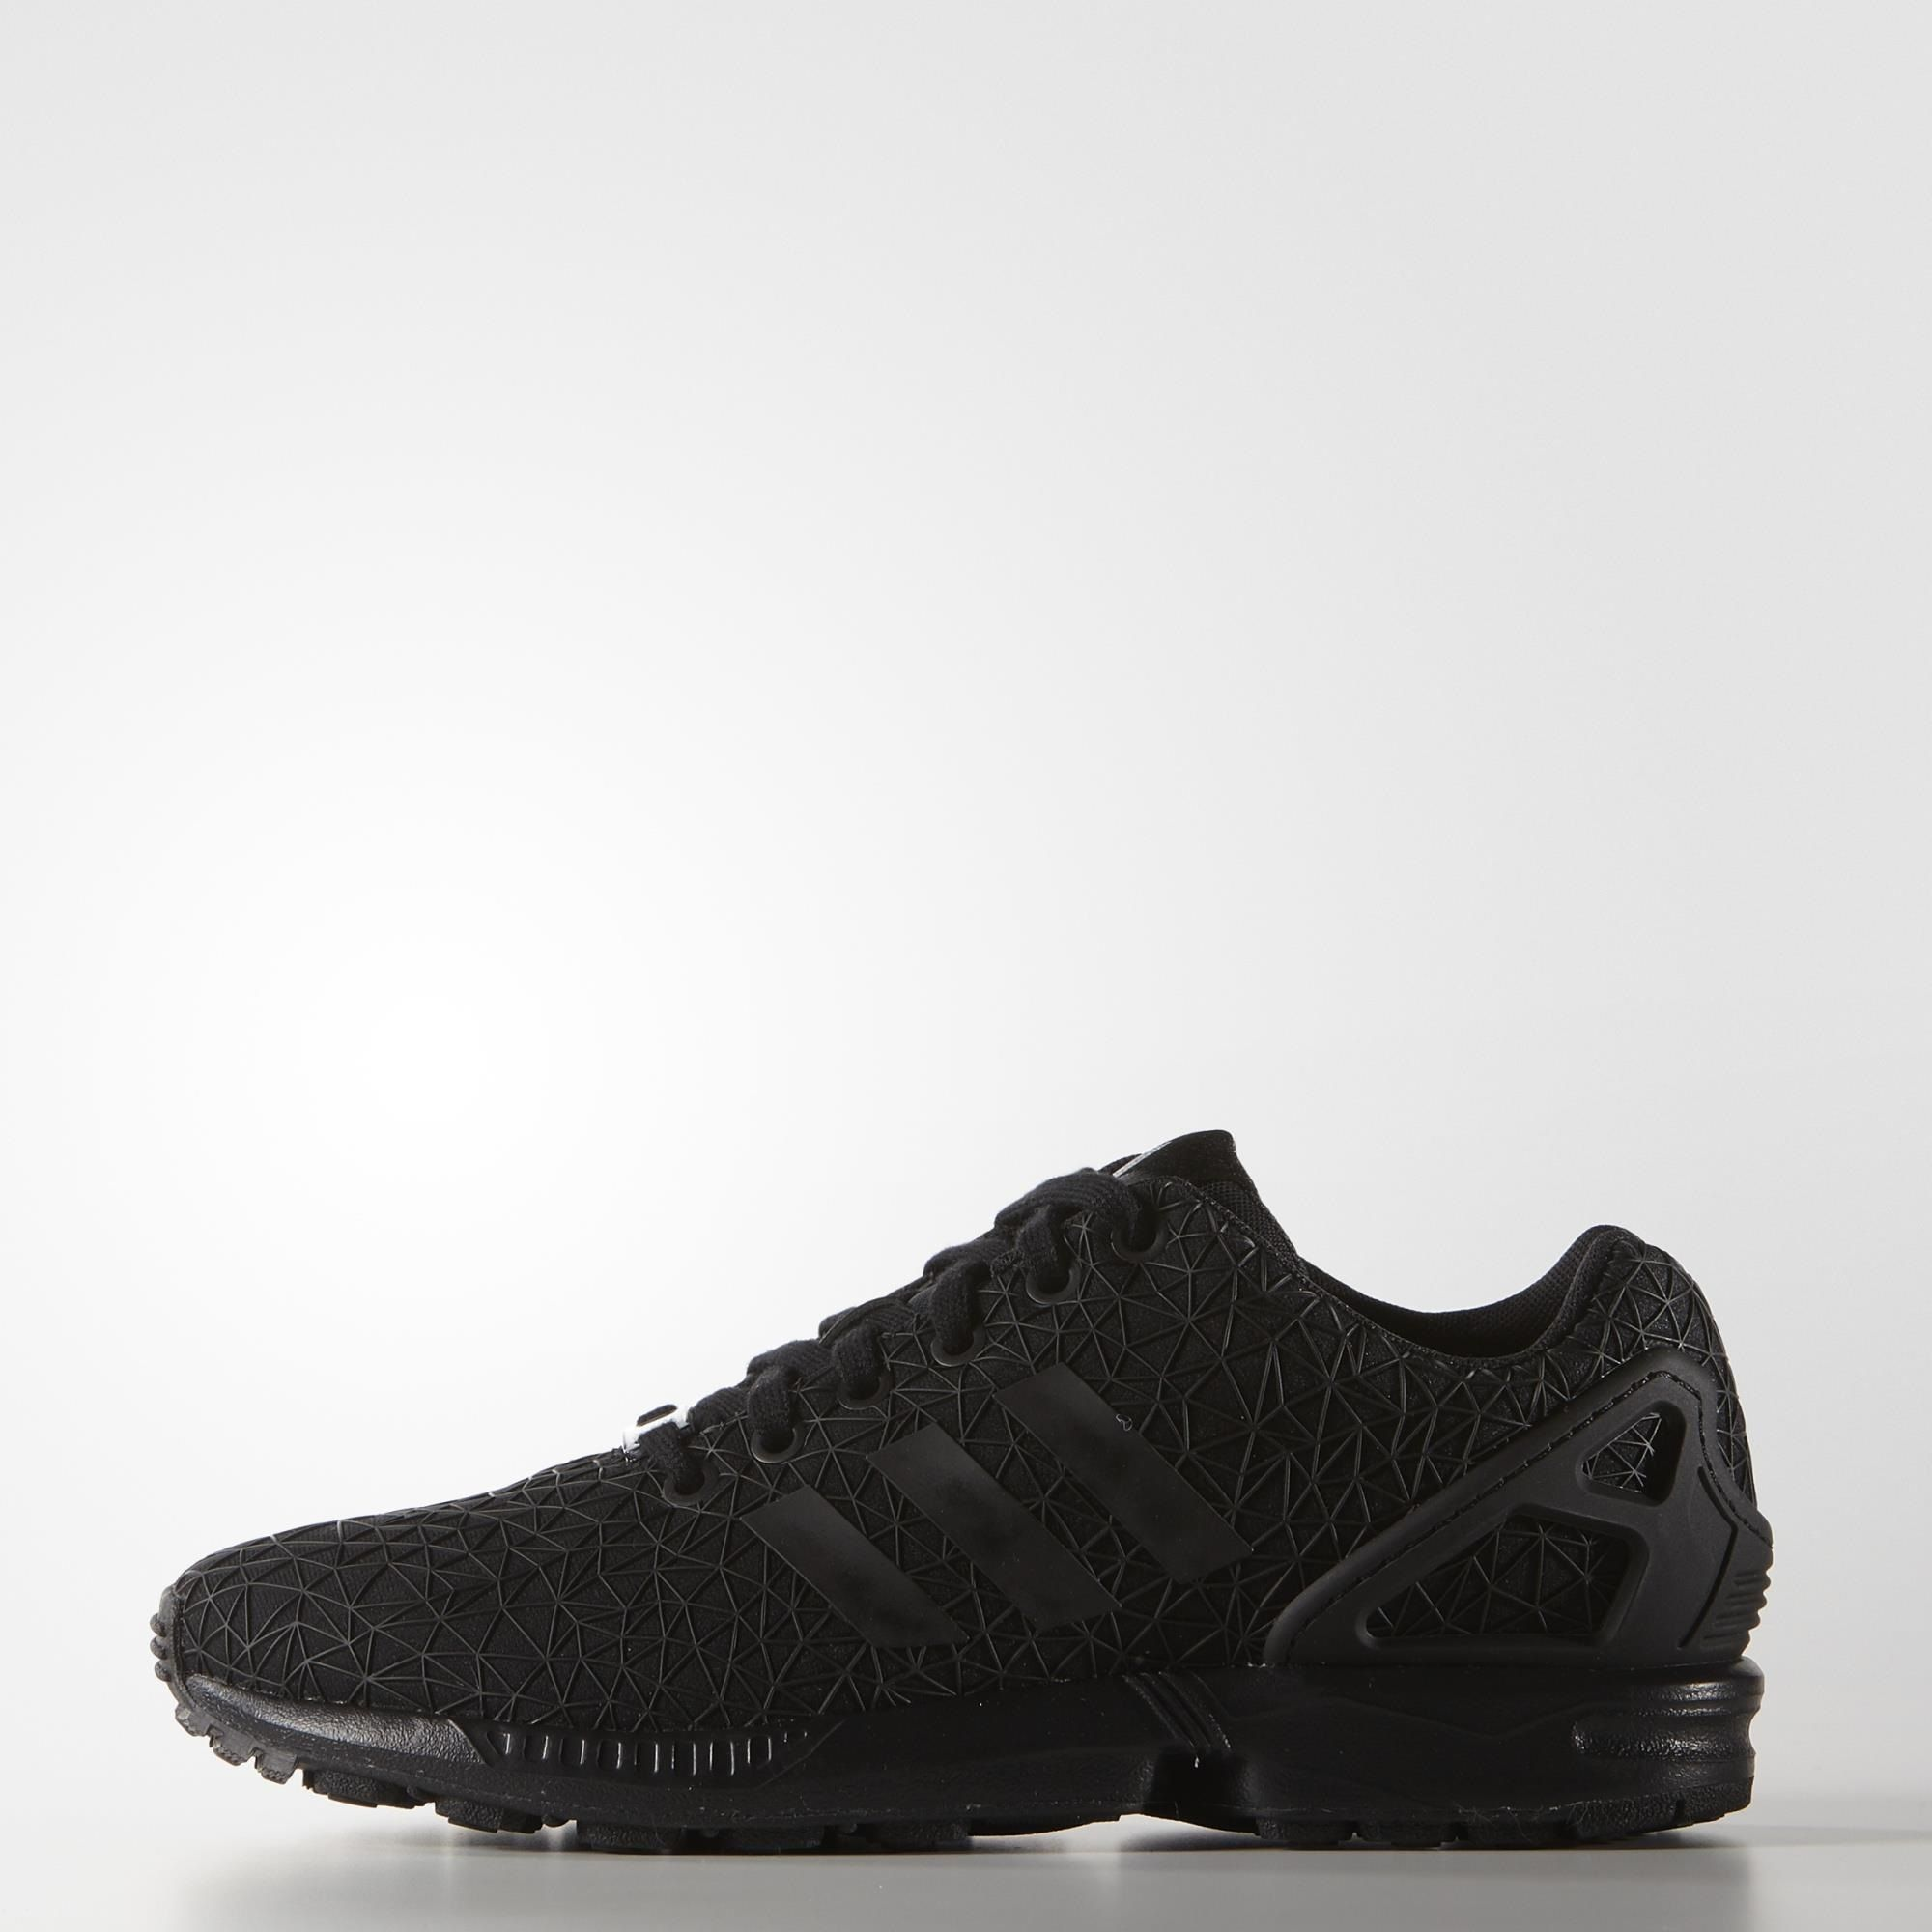 Simple yet stunning, the ZX Flux is a stylish descendant